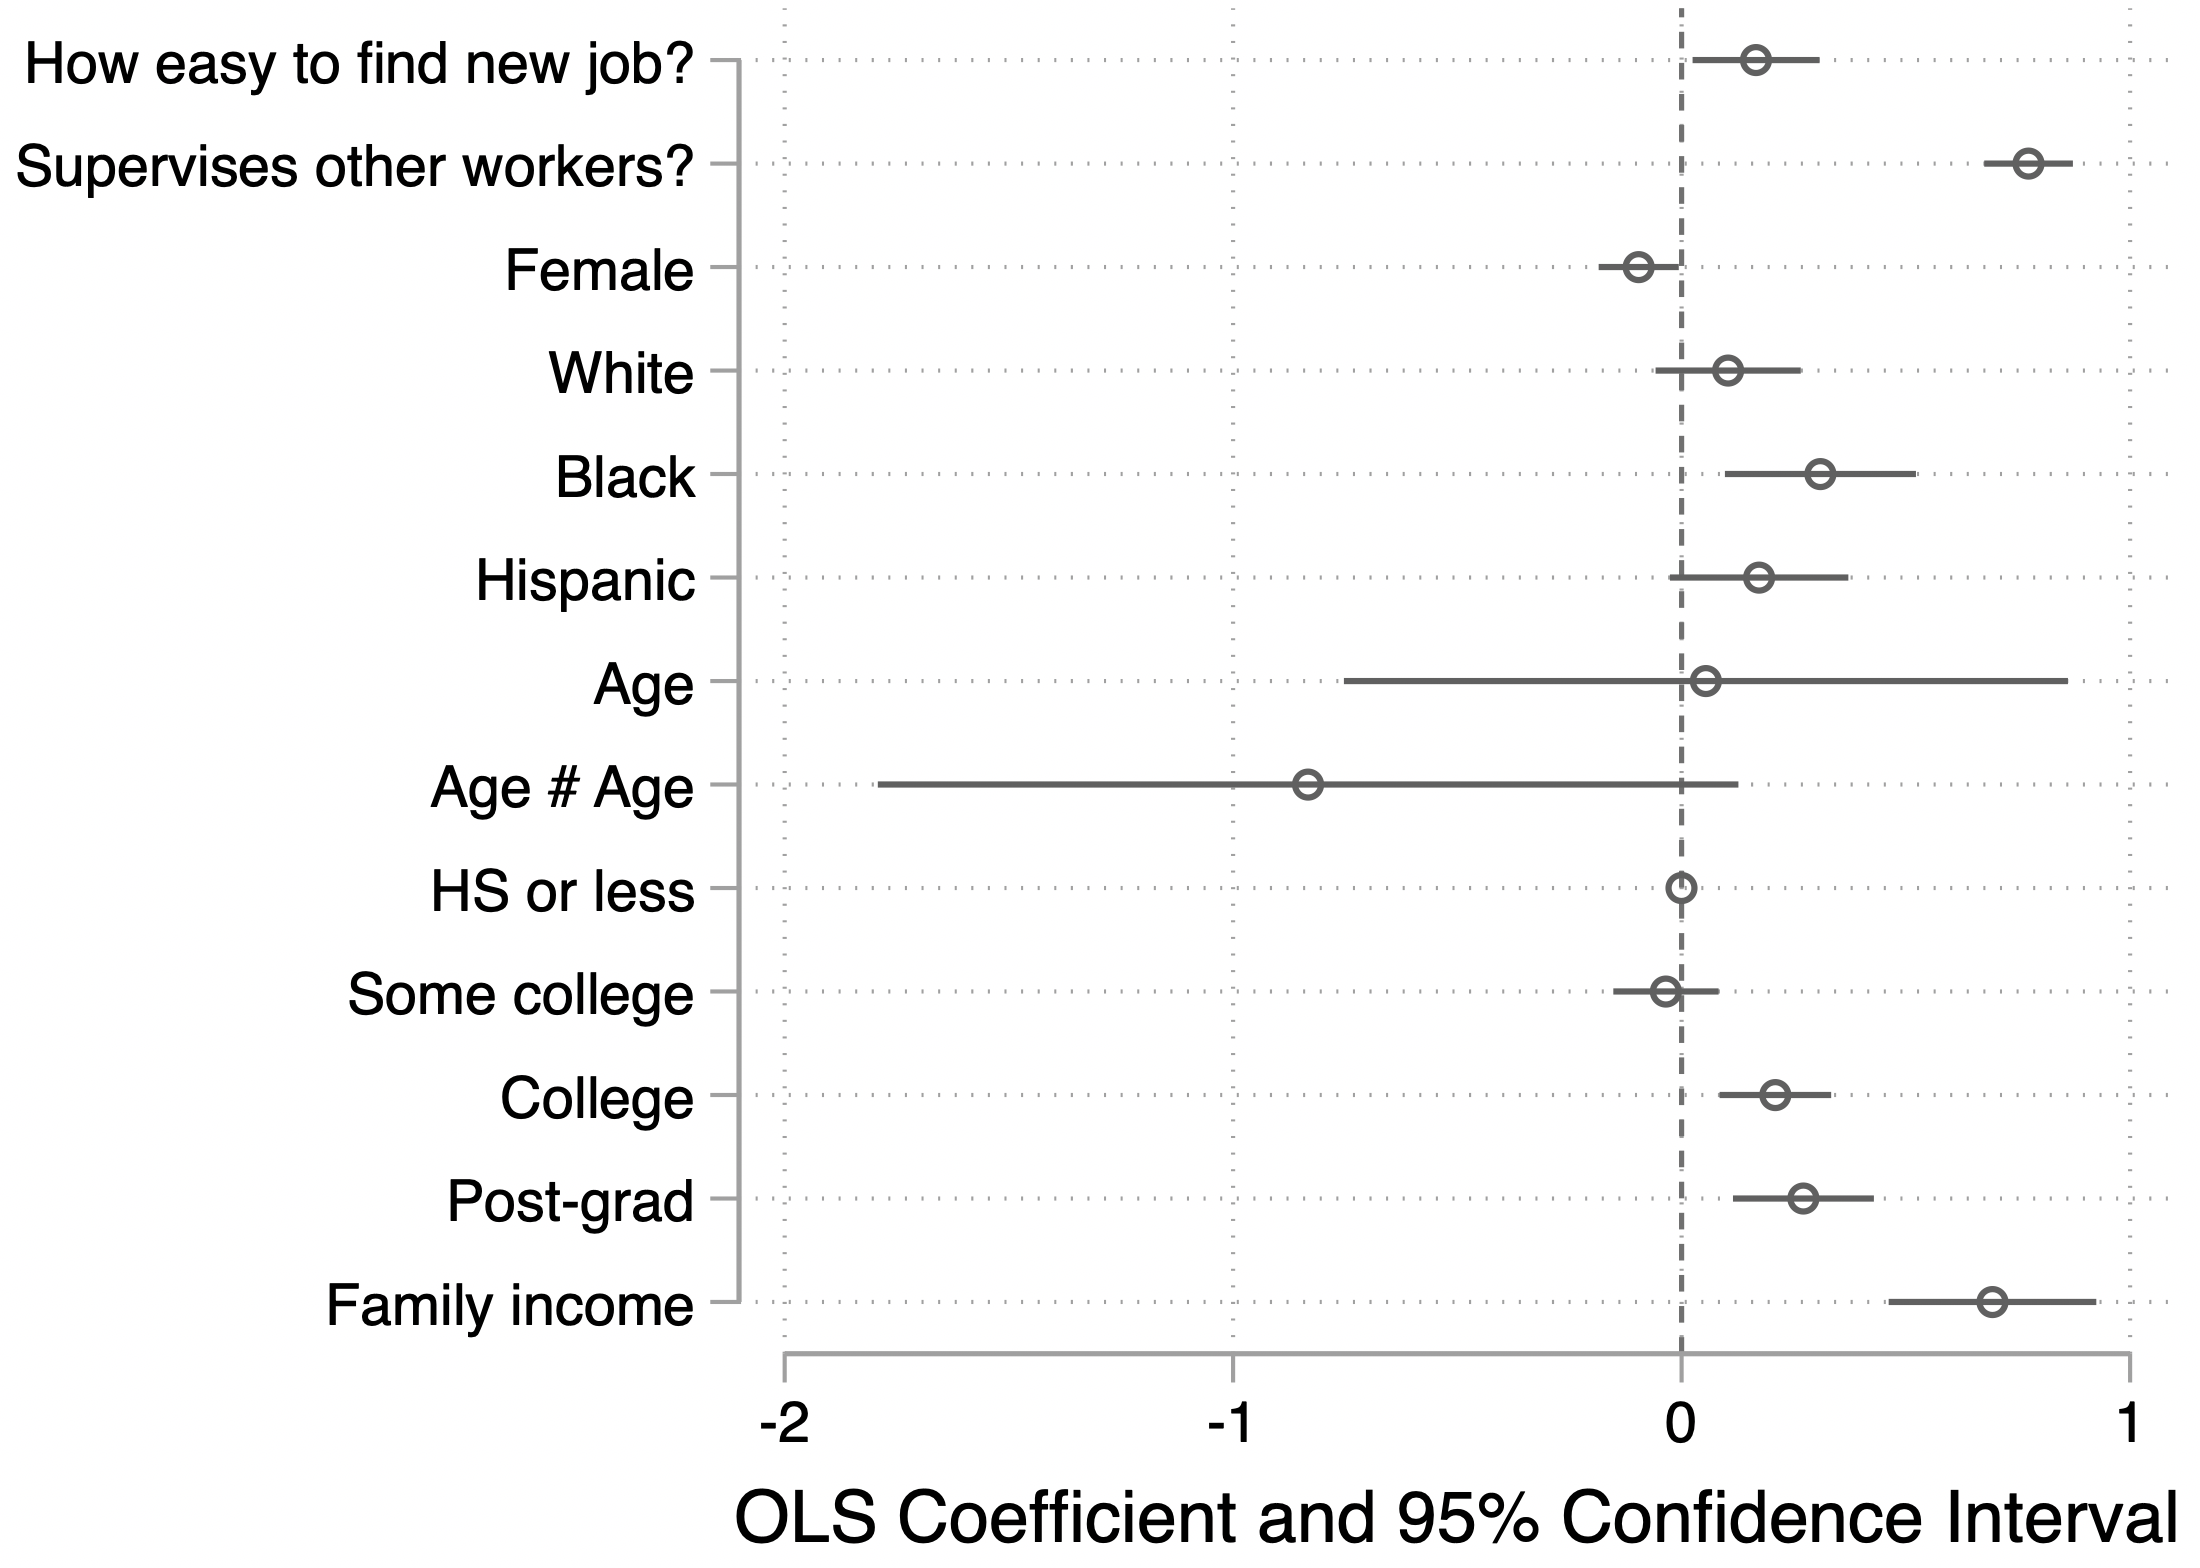 Predicting use of politically relevant skills at work (1-4 scale): Labor market power as predictor